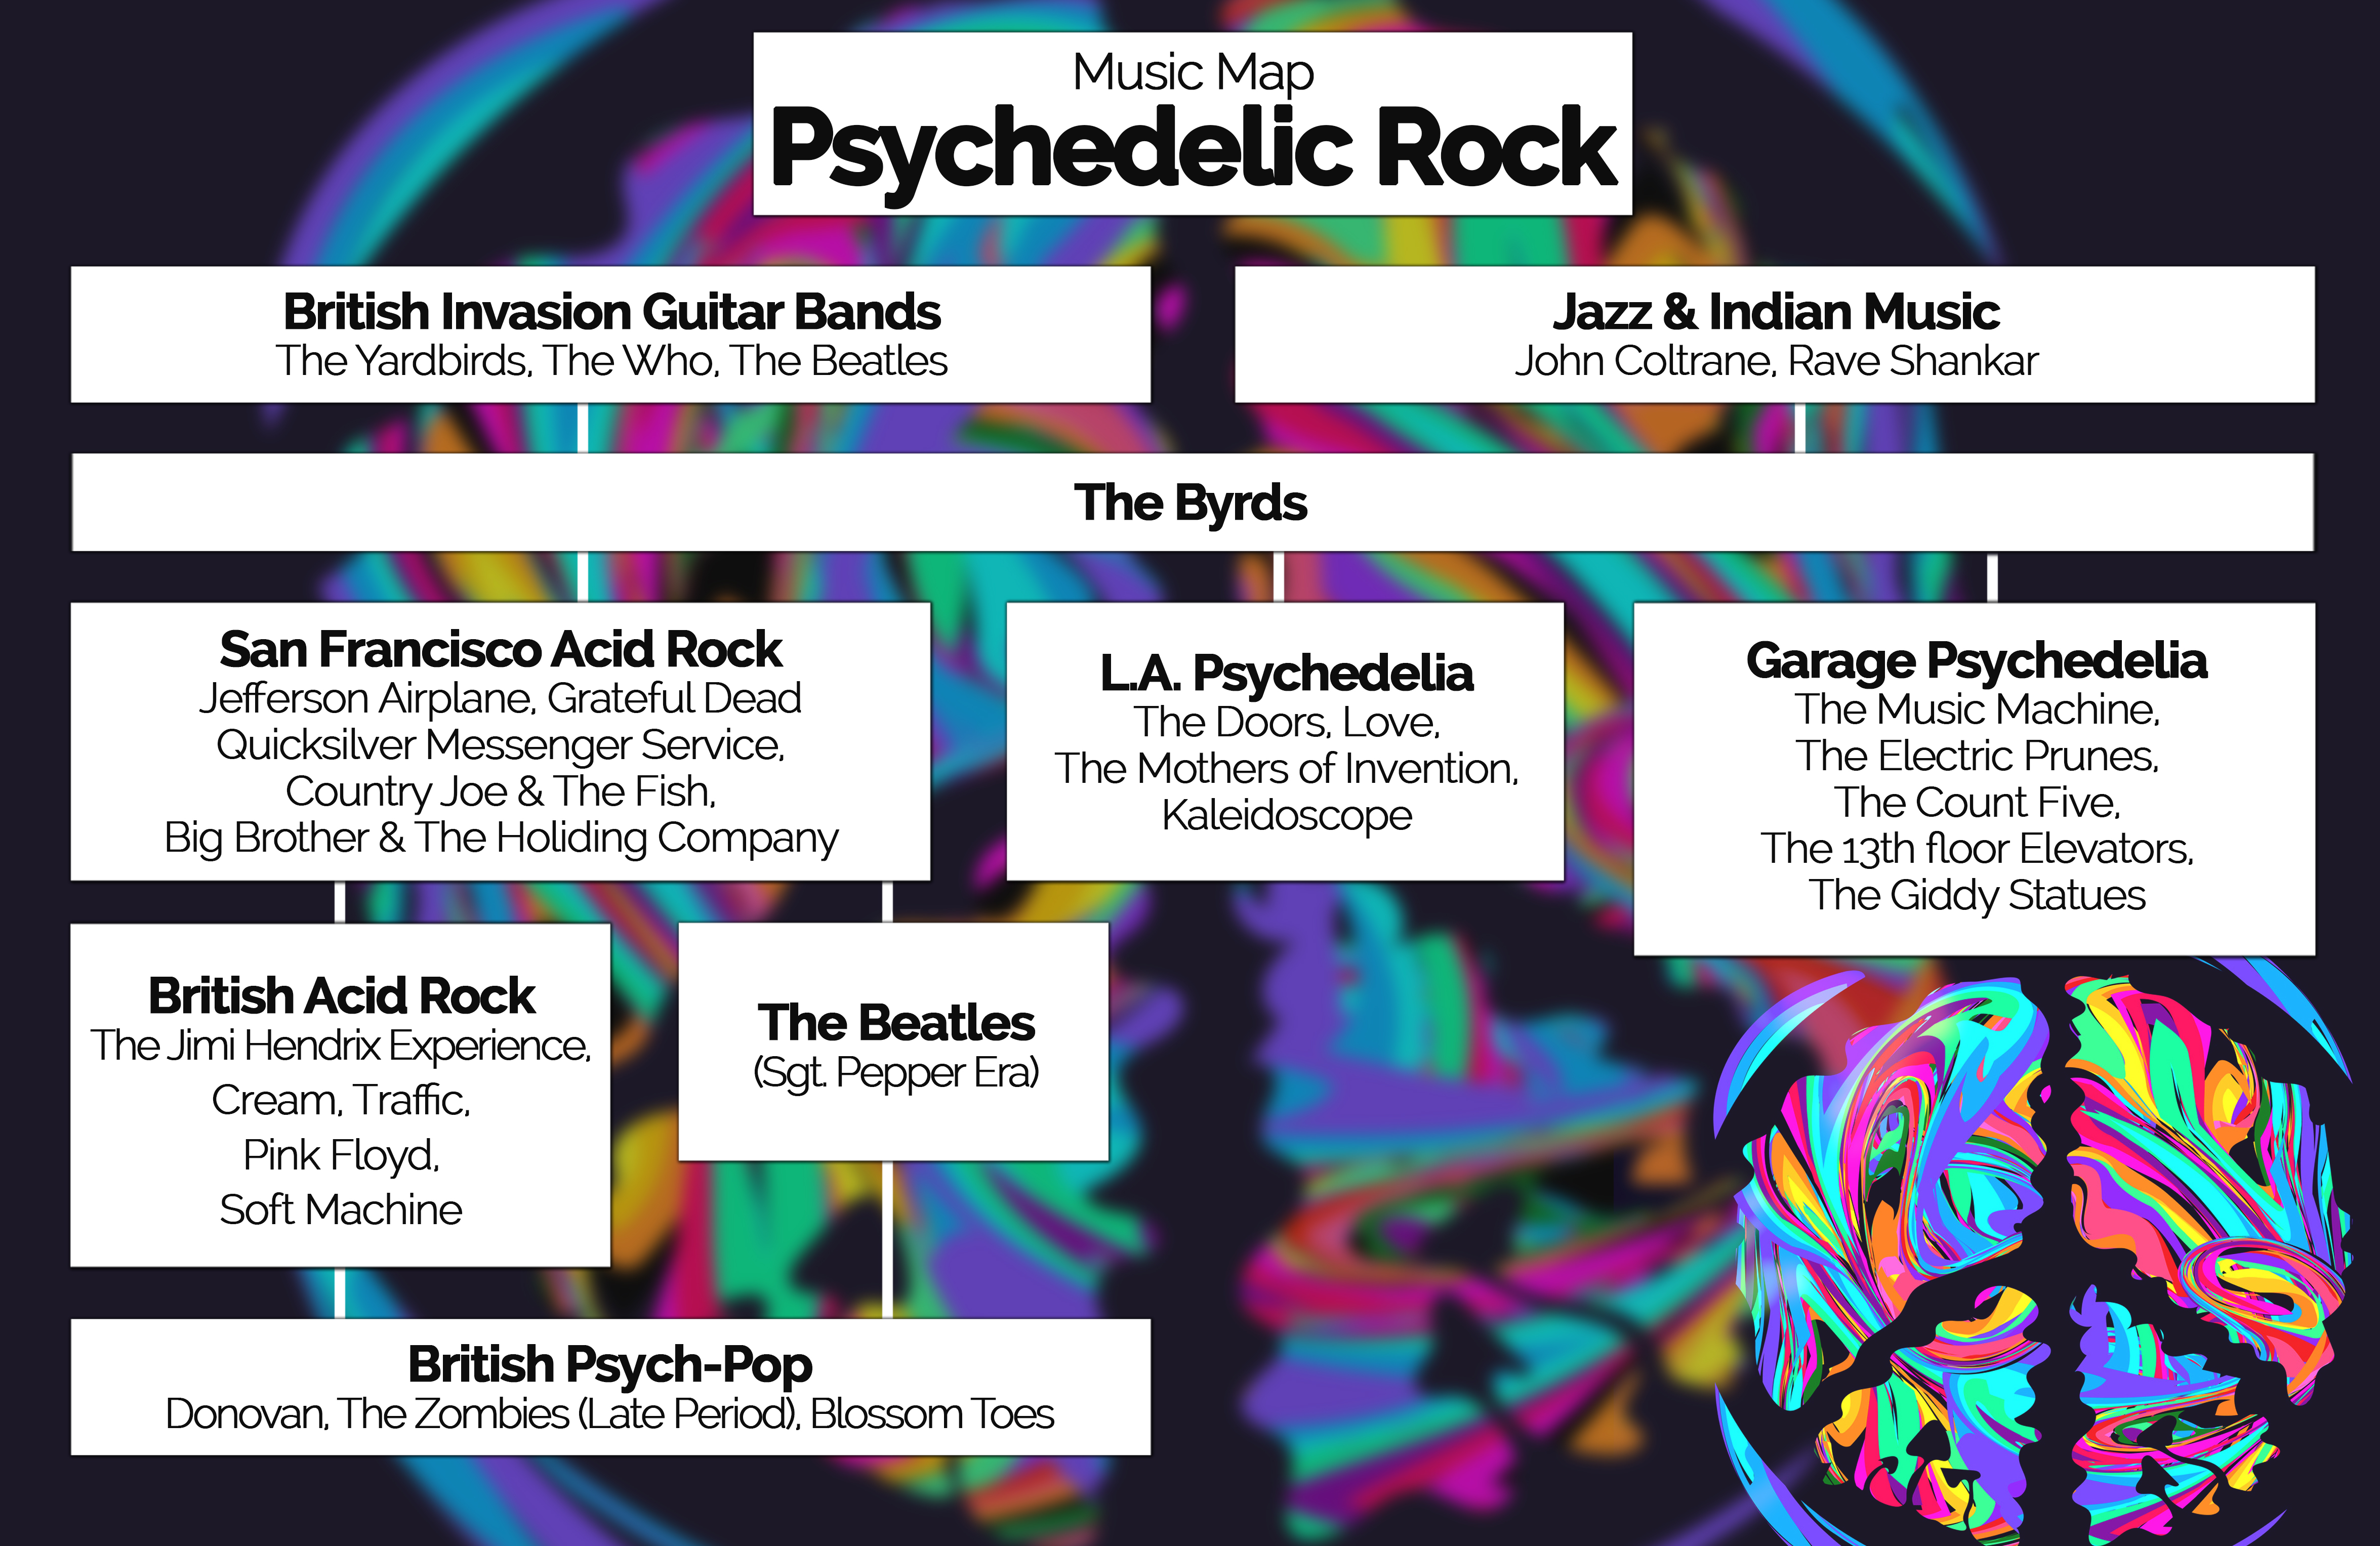 Music Map PSYCHEDELIC ROCK